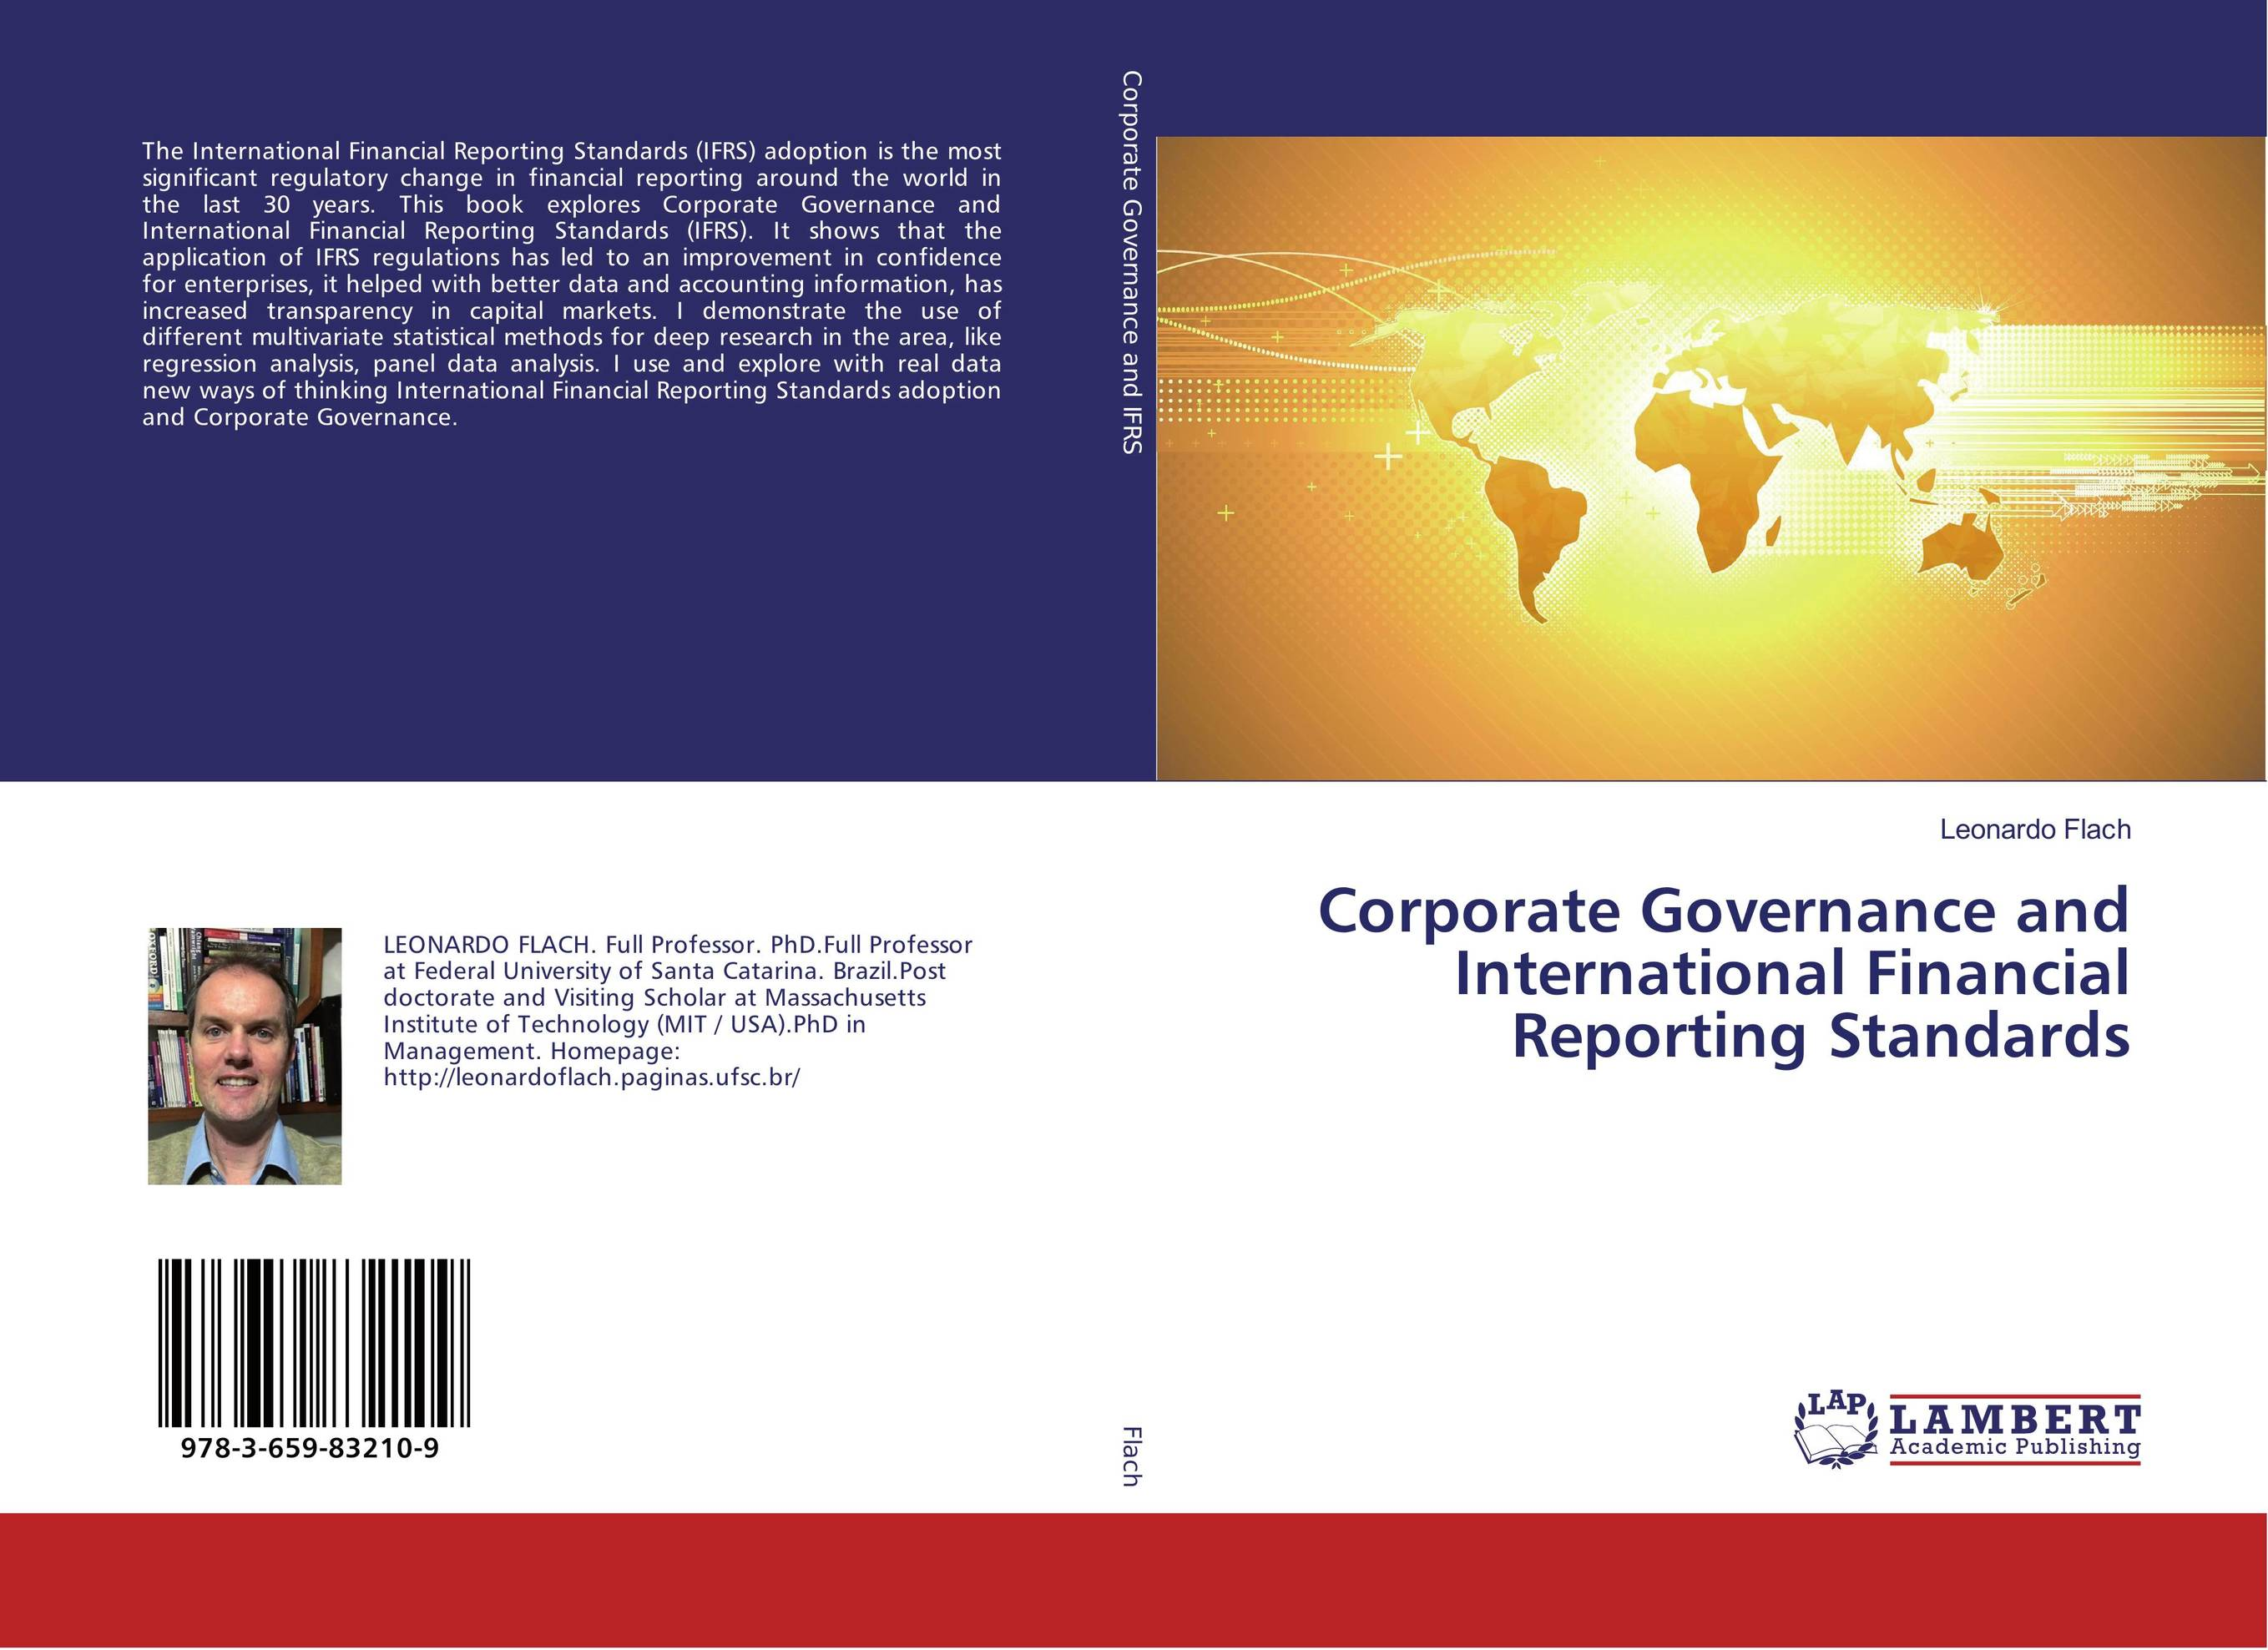 an analysis of corporation This analysis is based on the drivers of corporate strategy including the need to grow quickly and more importantly sustain such growth, the need to not lose sight of either longer term profitability and the shorter term results and the balancing of both, and its focus on cost leadership and whether its.